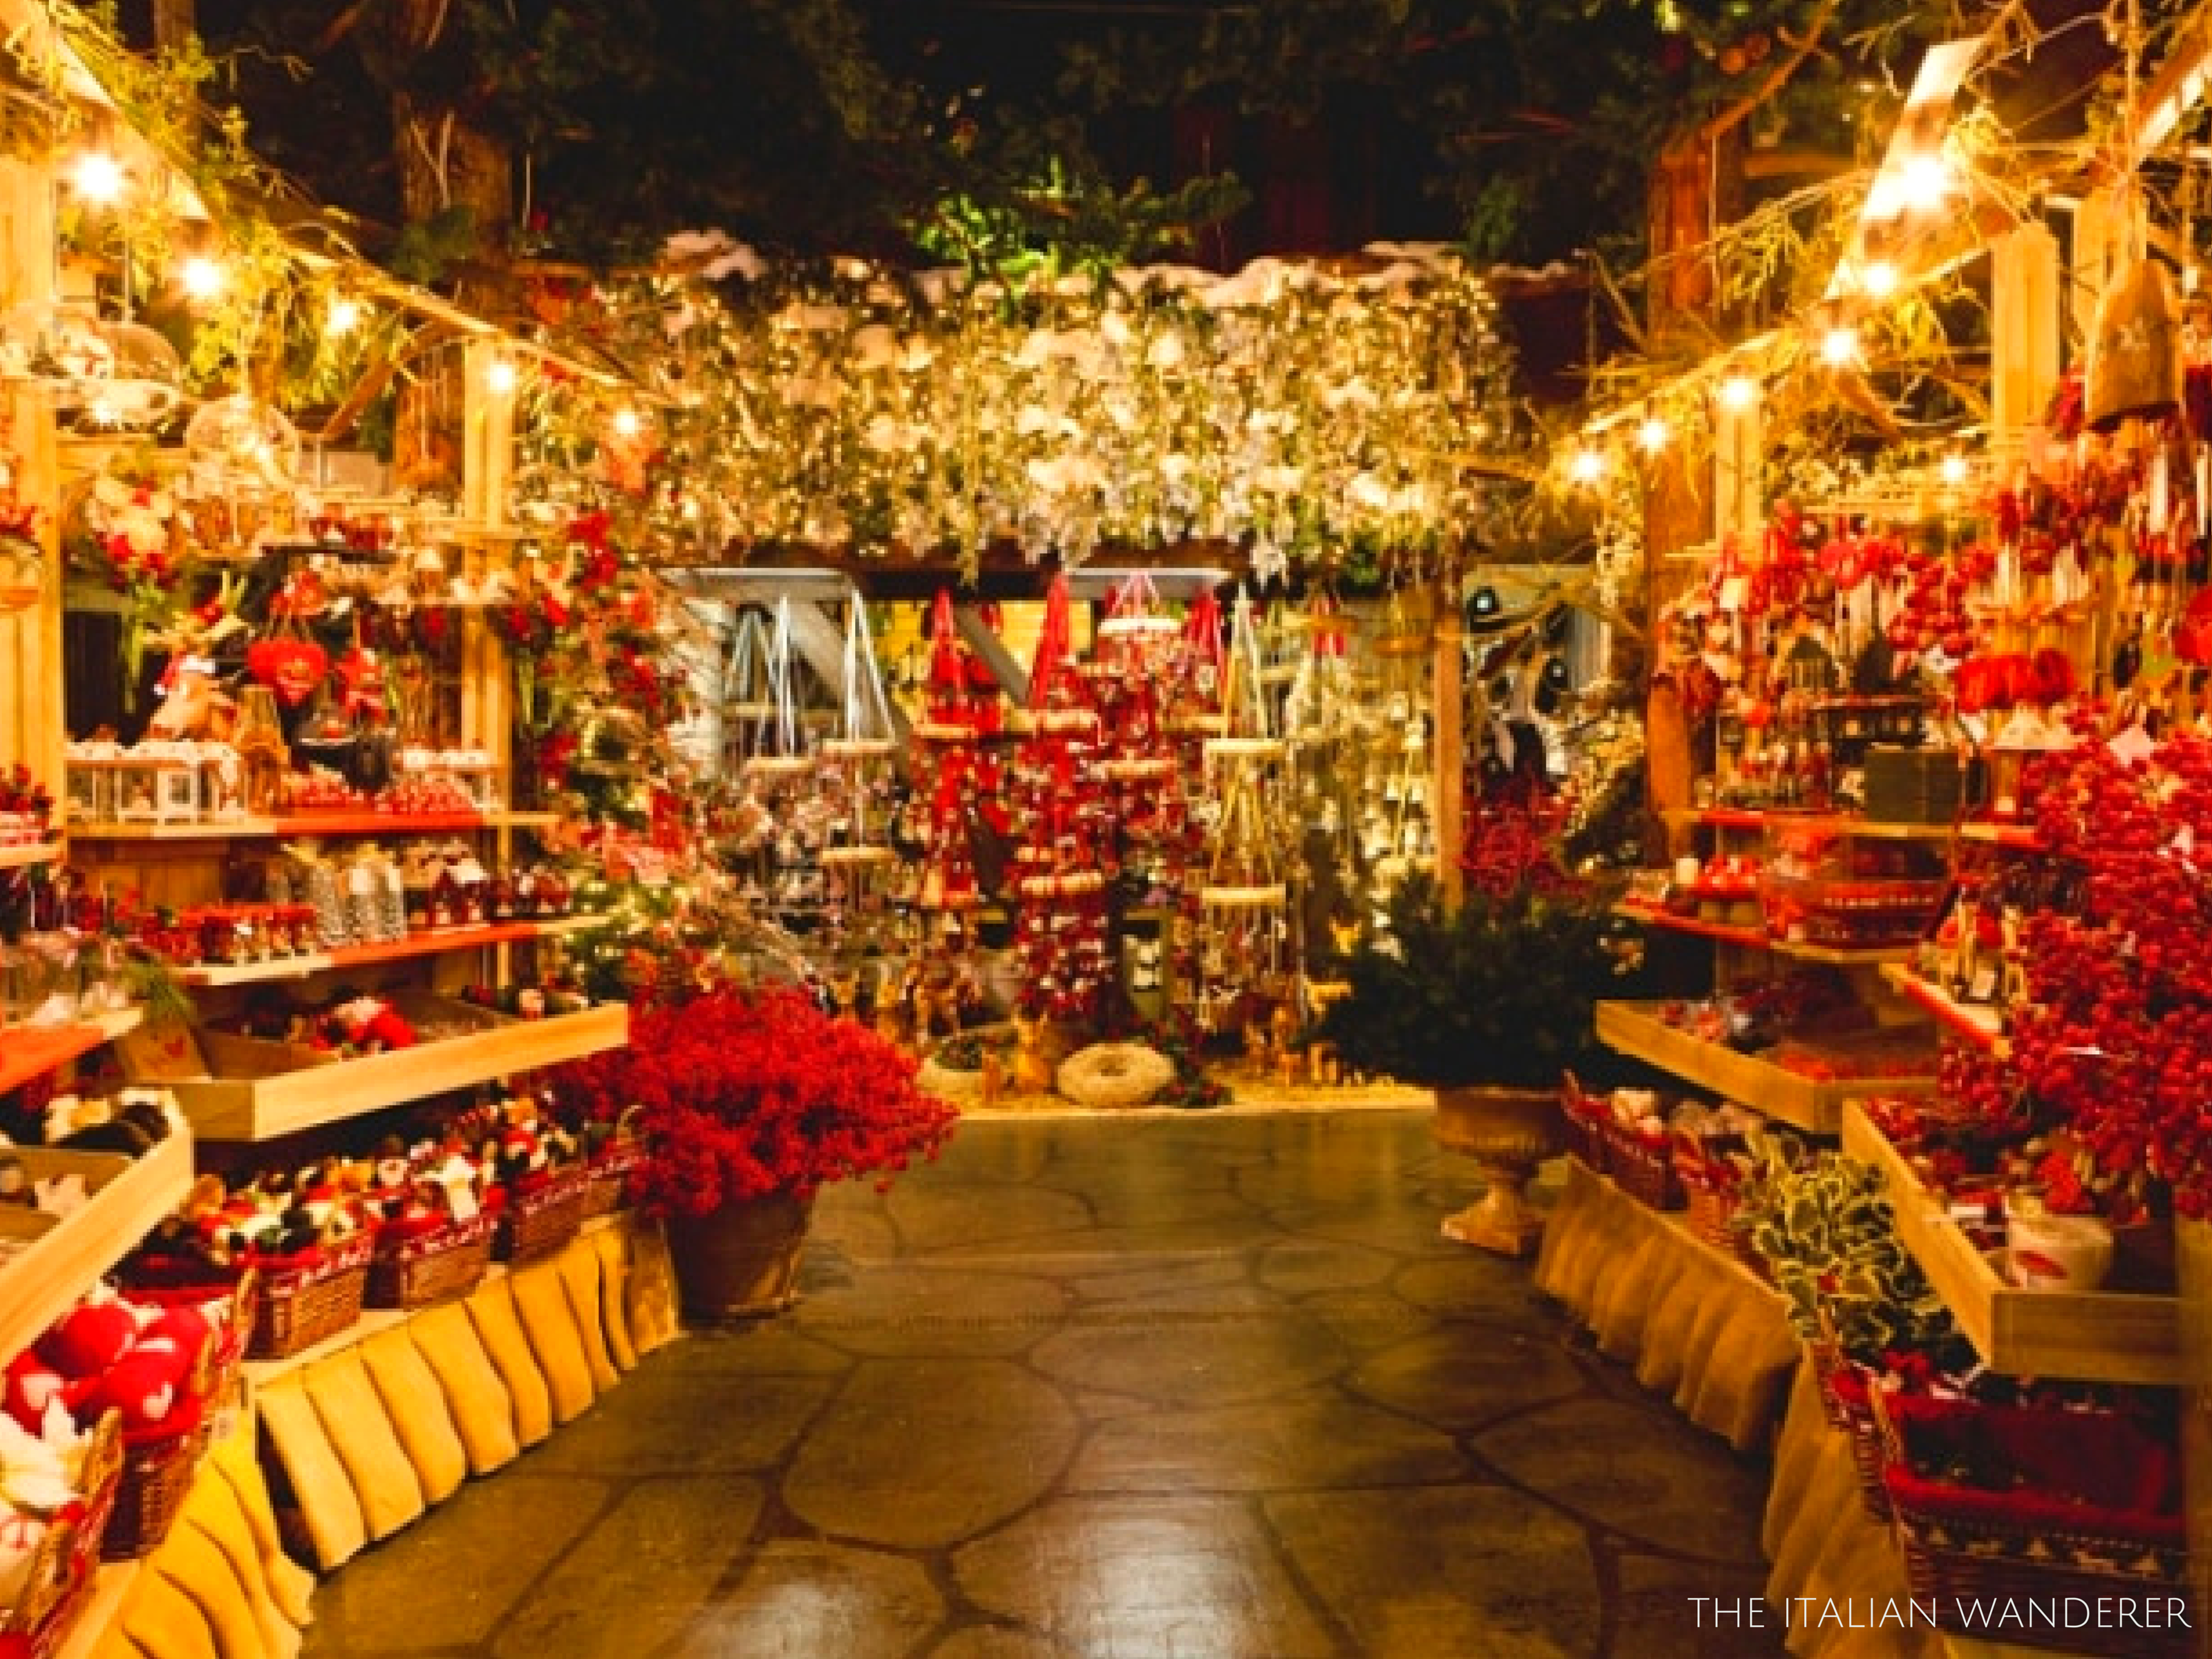 #Verona's #Christmas #Markets